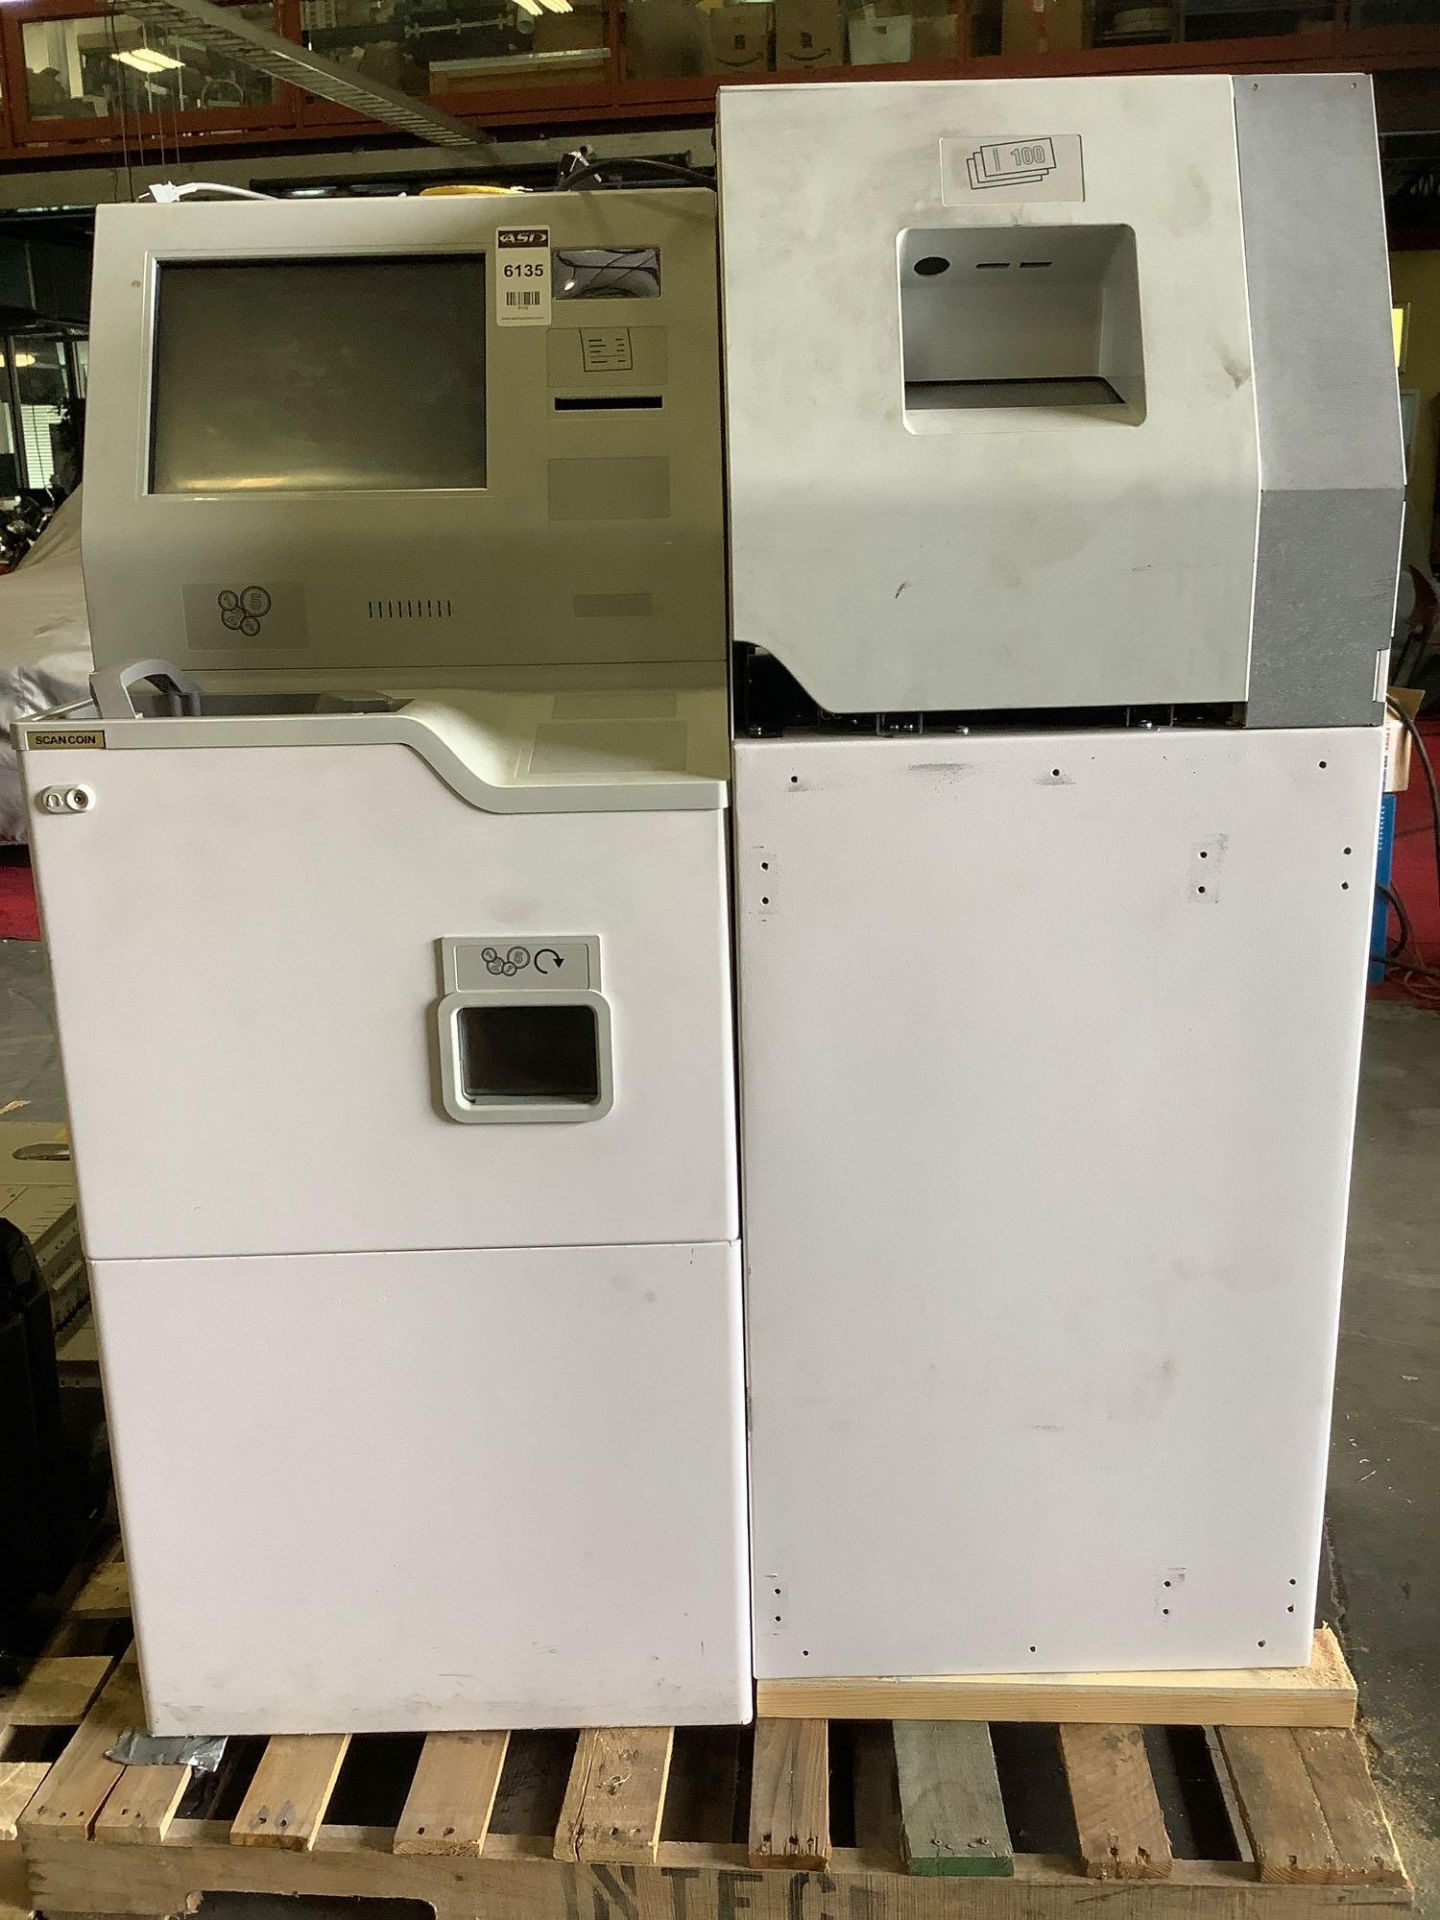 SCAN COIN MACHINE MODEL CDS9, APPROX AMP 4.0-2.0 A, APPROX VAC 90-240, APPROX HZ 60 - Image 4 of 12